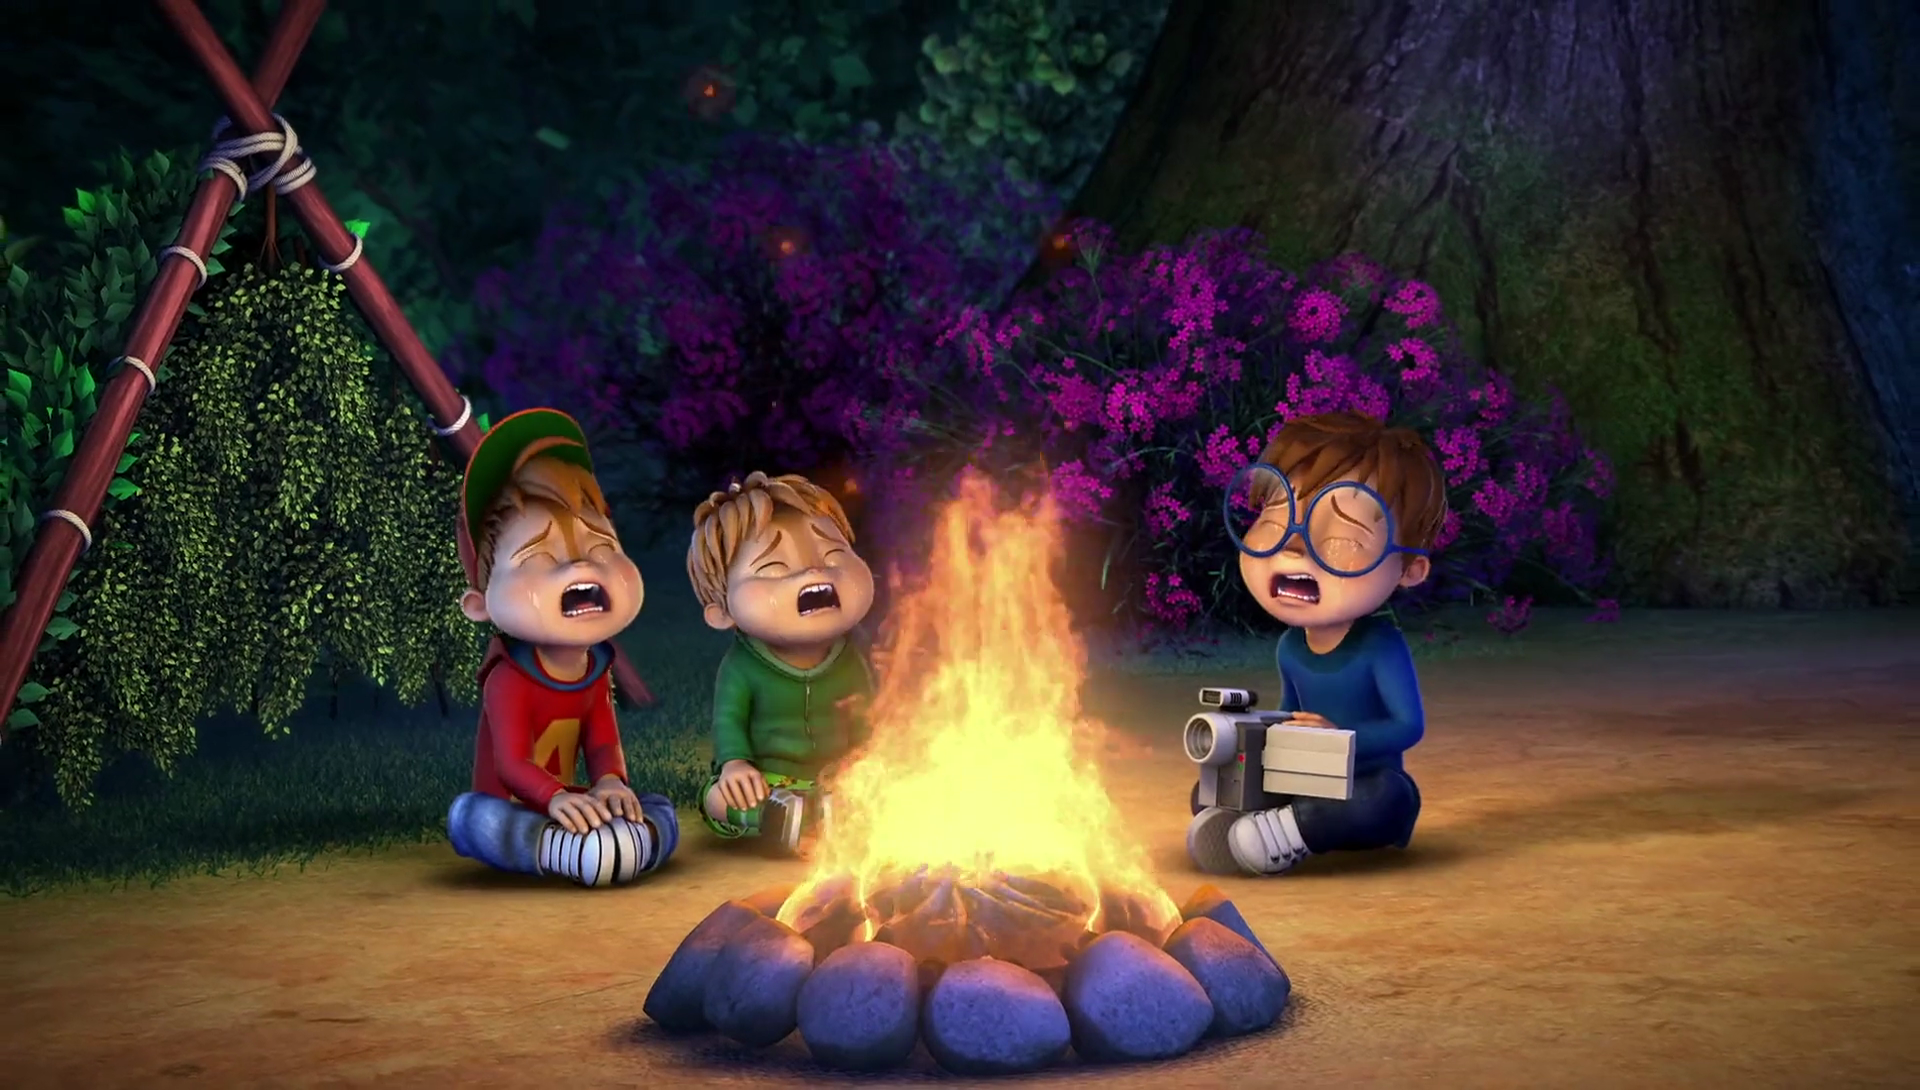 Alvin, Simon, and Theodore Crying